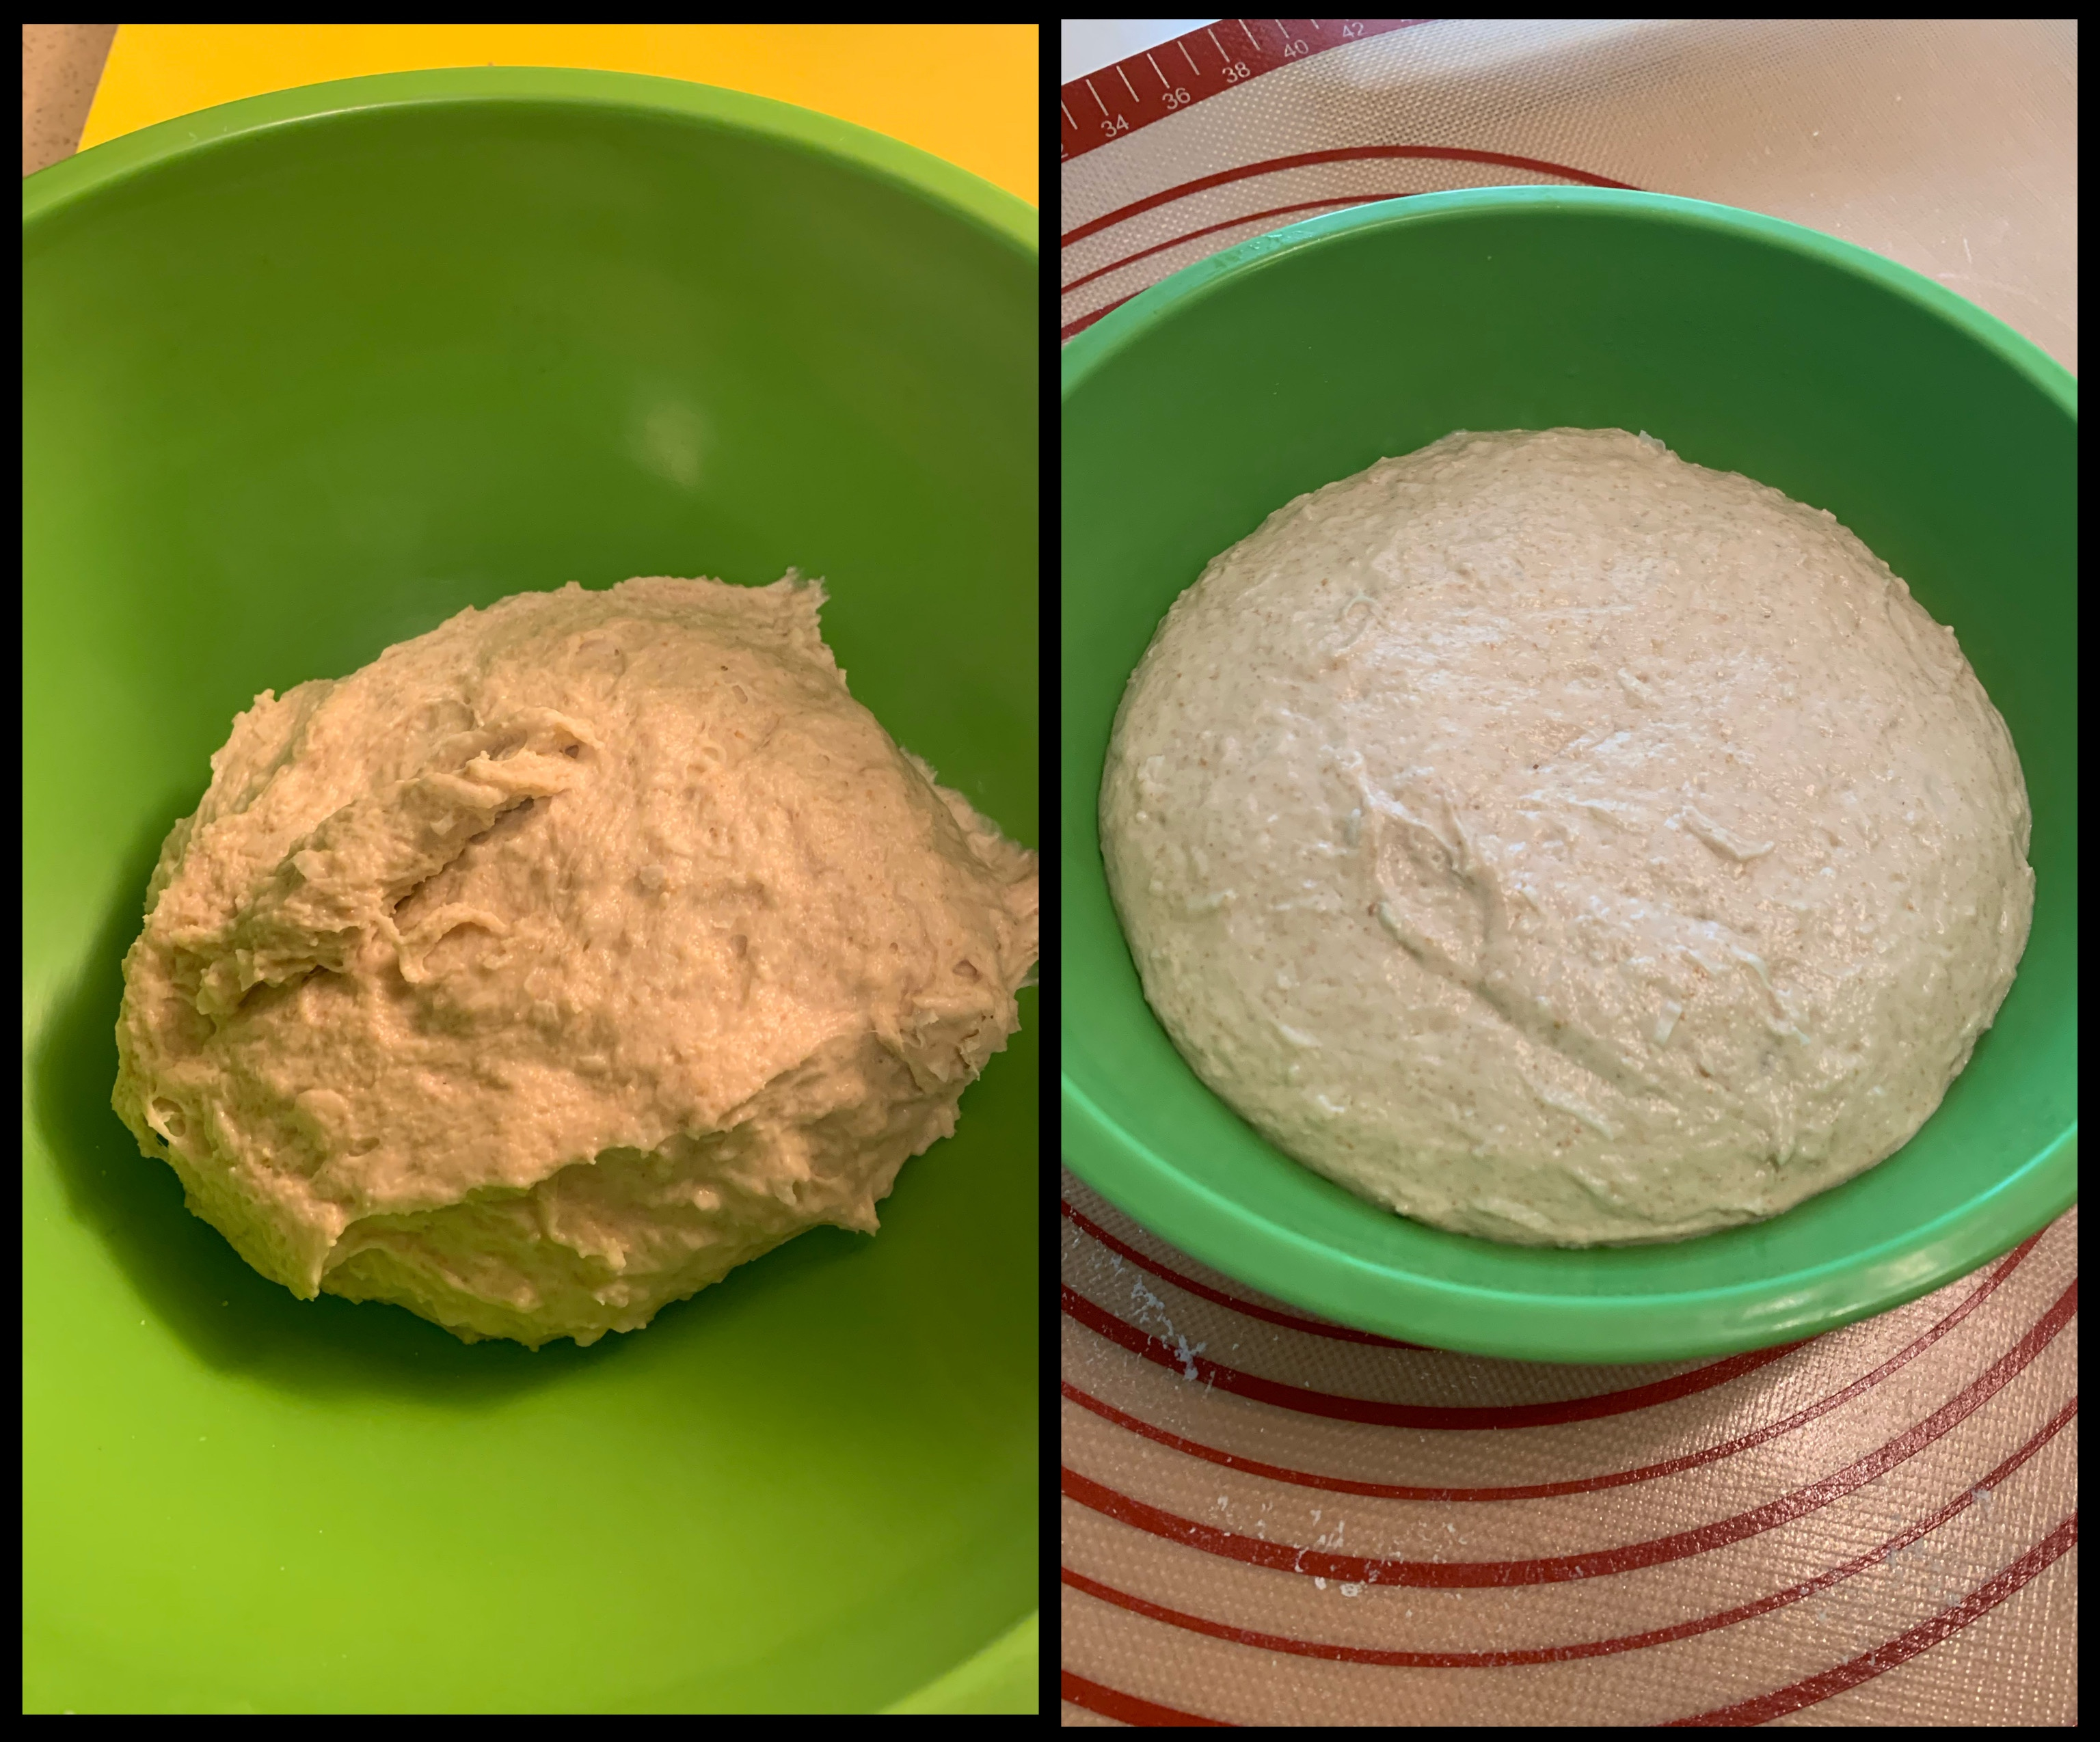 Left: kneaded dough in green bowl. Right: dough filling green bowl after bulk fermentation.